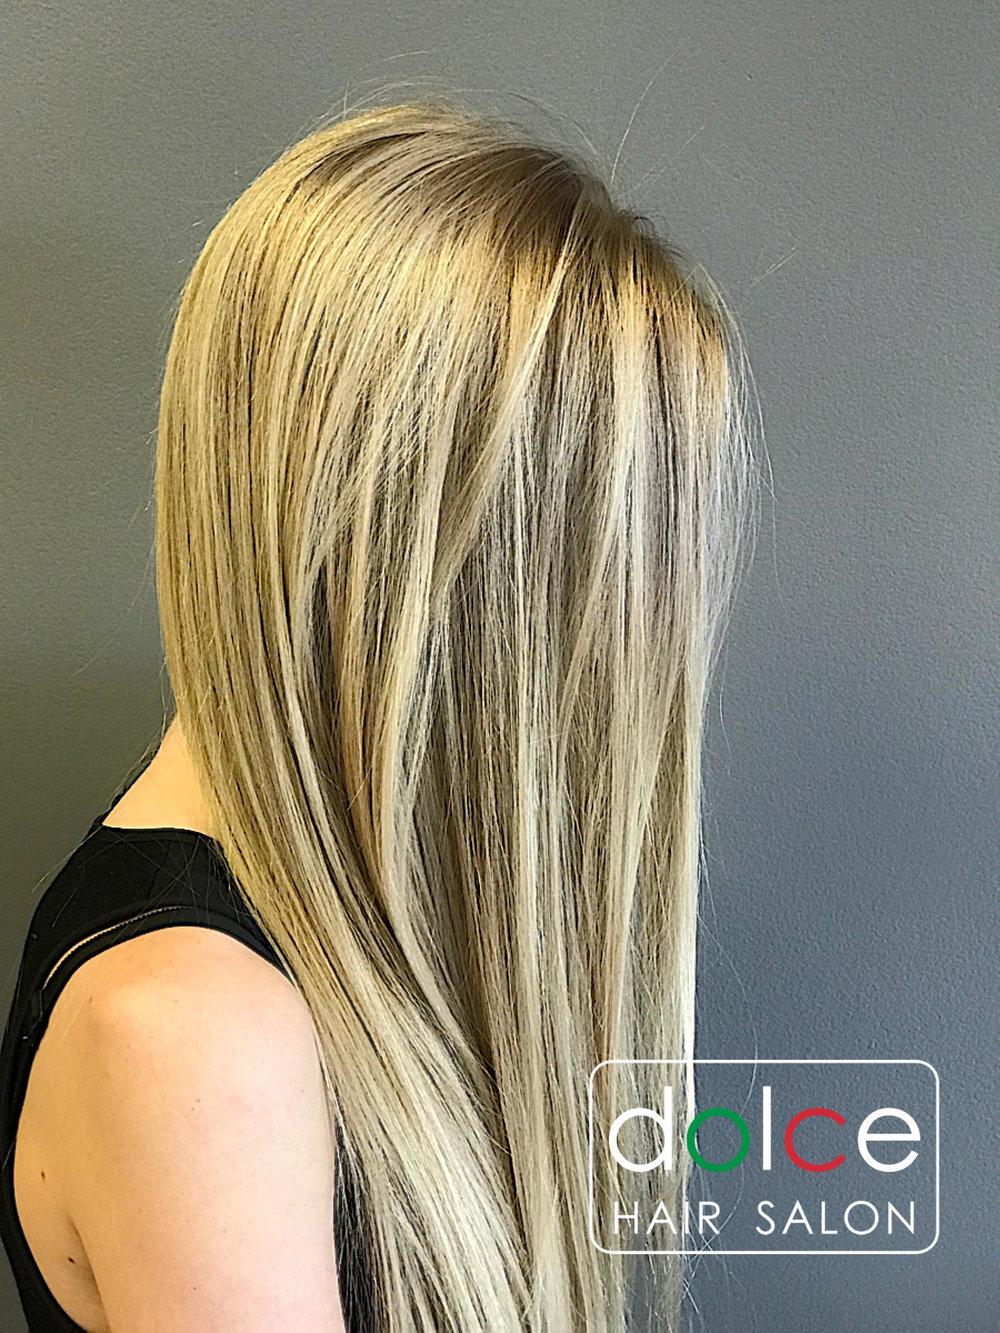 Dolce Hair Salon Pictures Pics 6.jpg